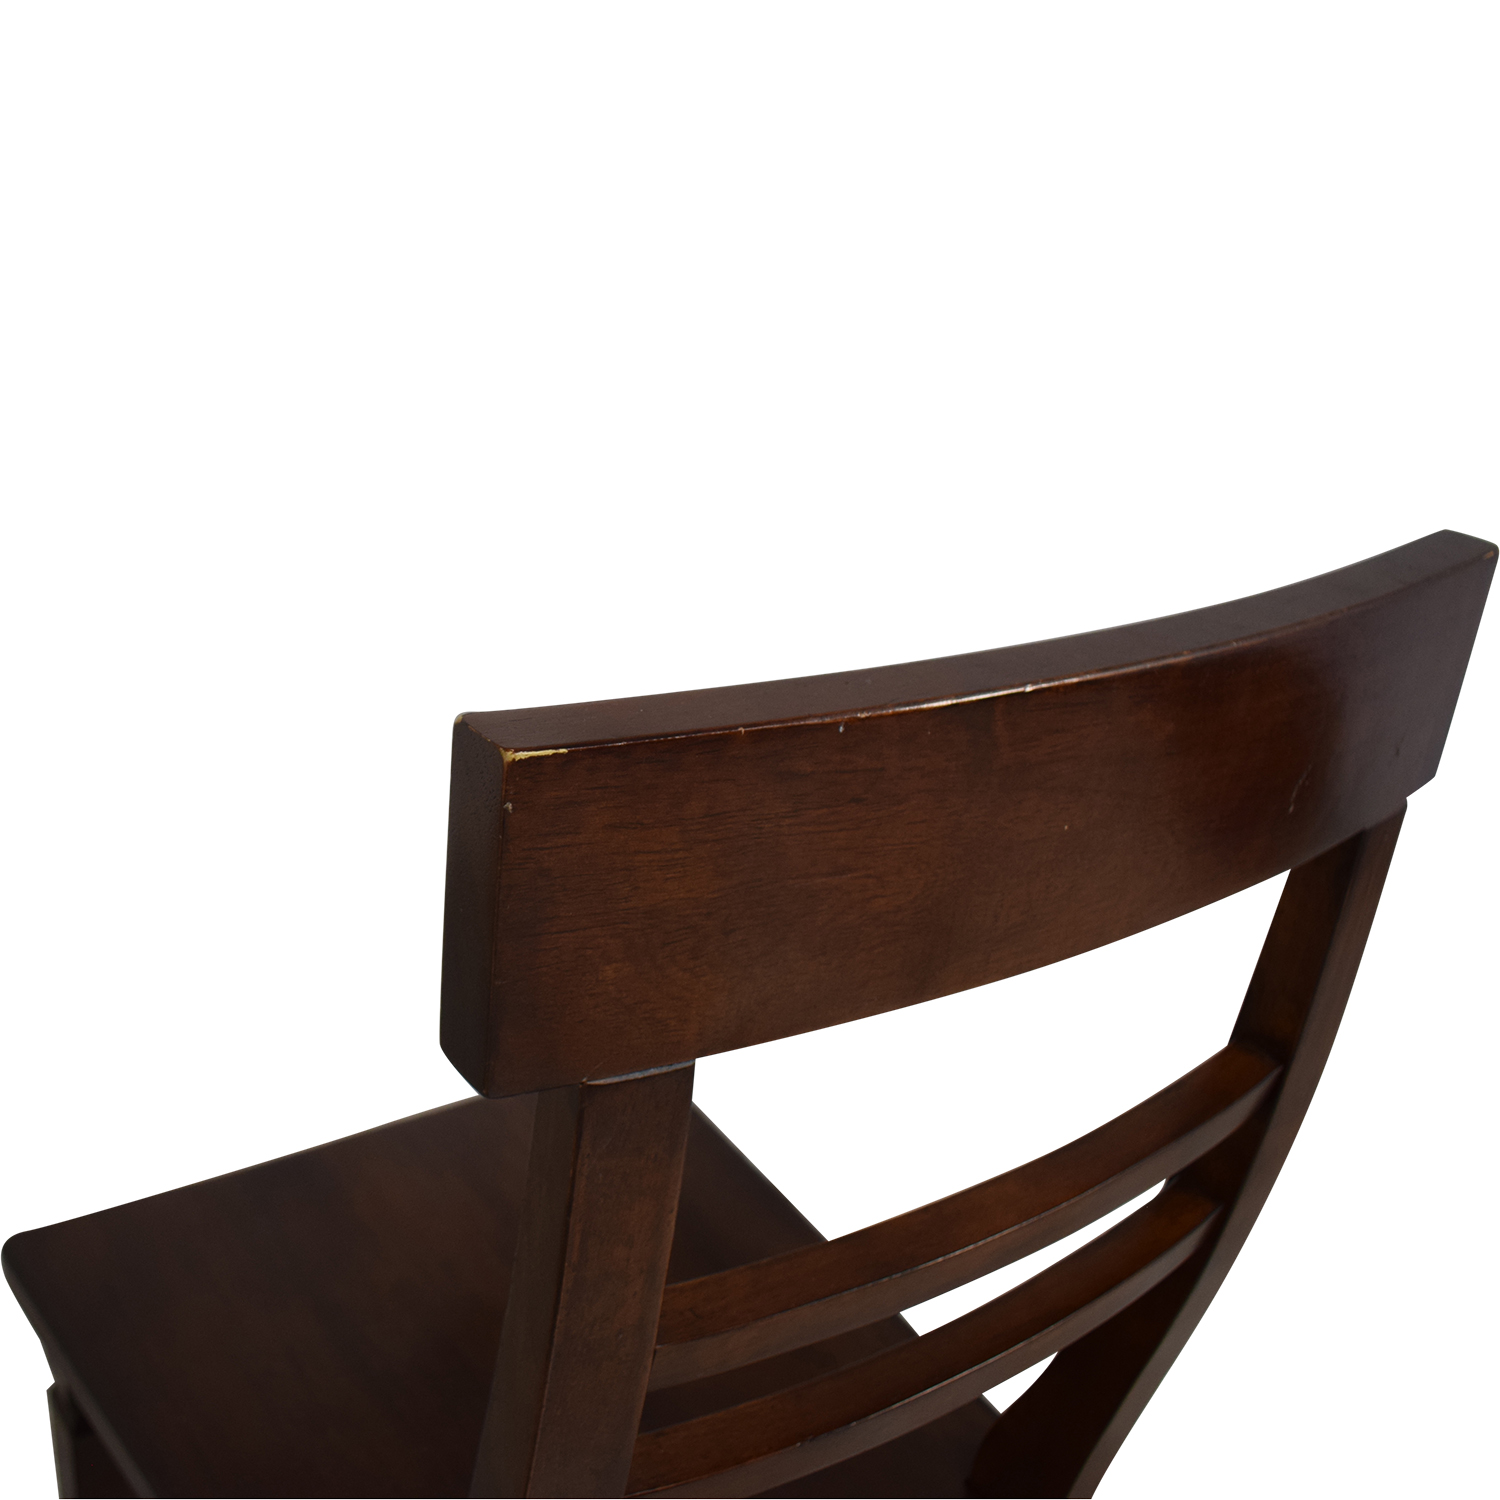 Crate & Barrel Crate & Barrel Dining Chairs on sale